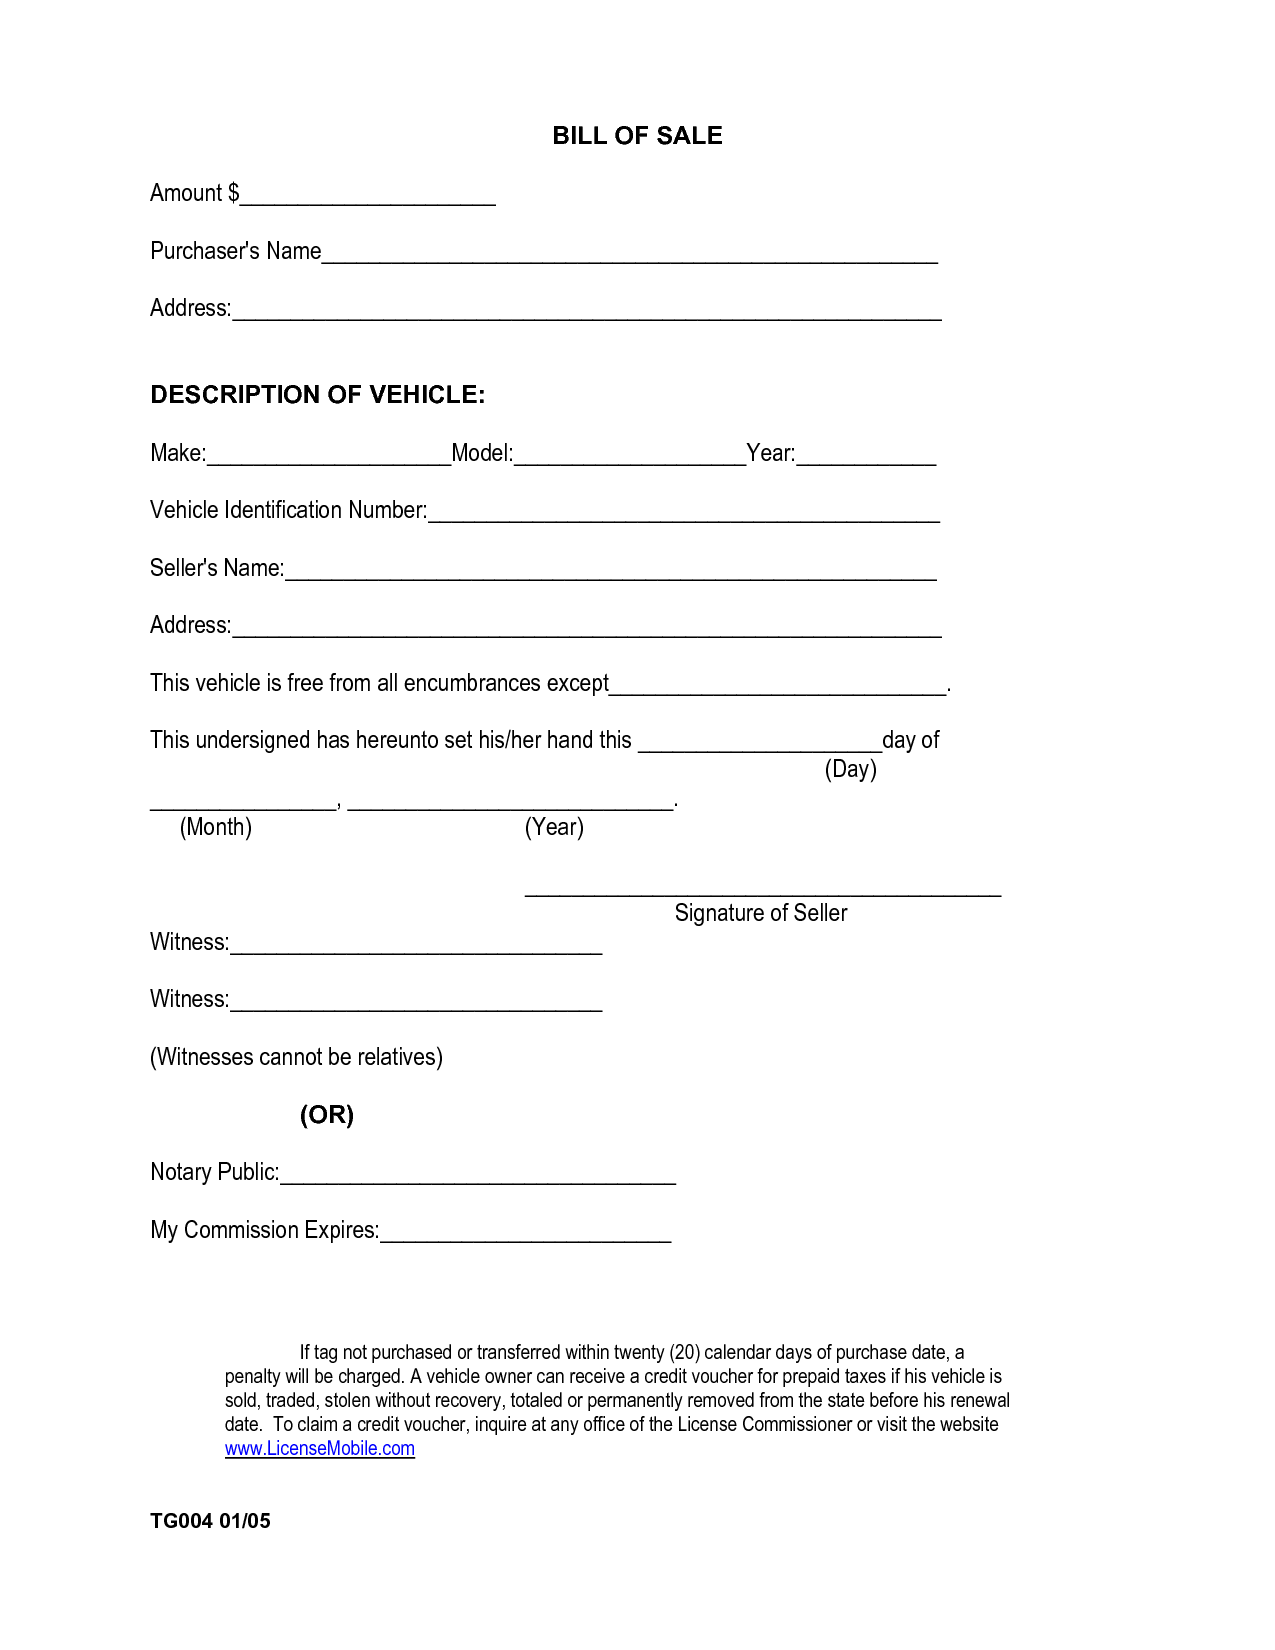 Template Bill Of Sale for Used Car and Printable Sample Car Bill Of Sale form Laywers Template forms